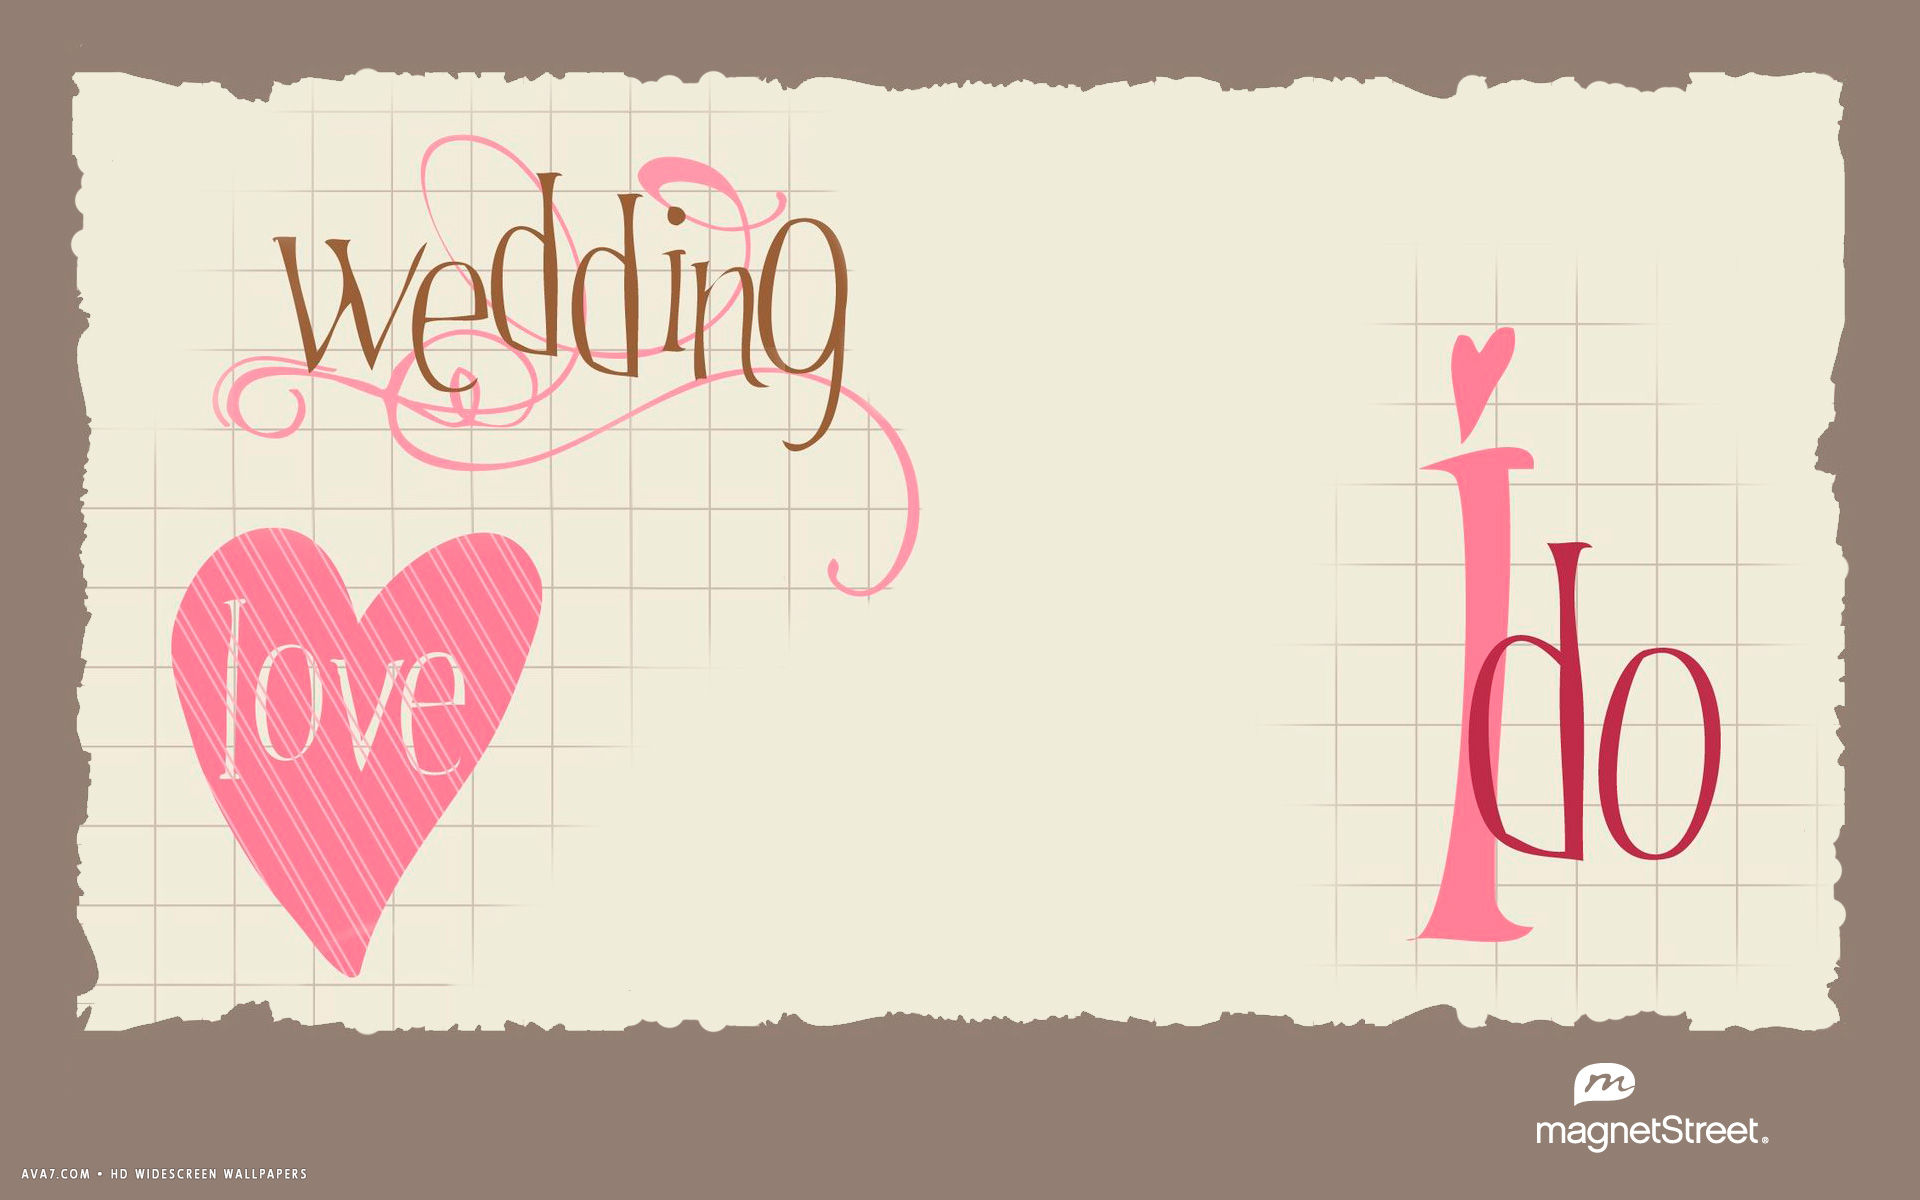 Wedding Love I Do Heart Card Letters Words Hd Widescreen Wallpaper